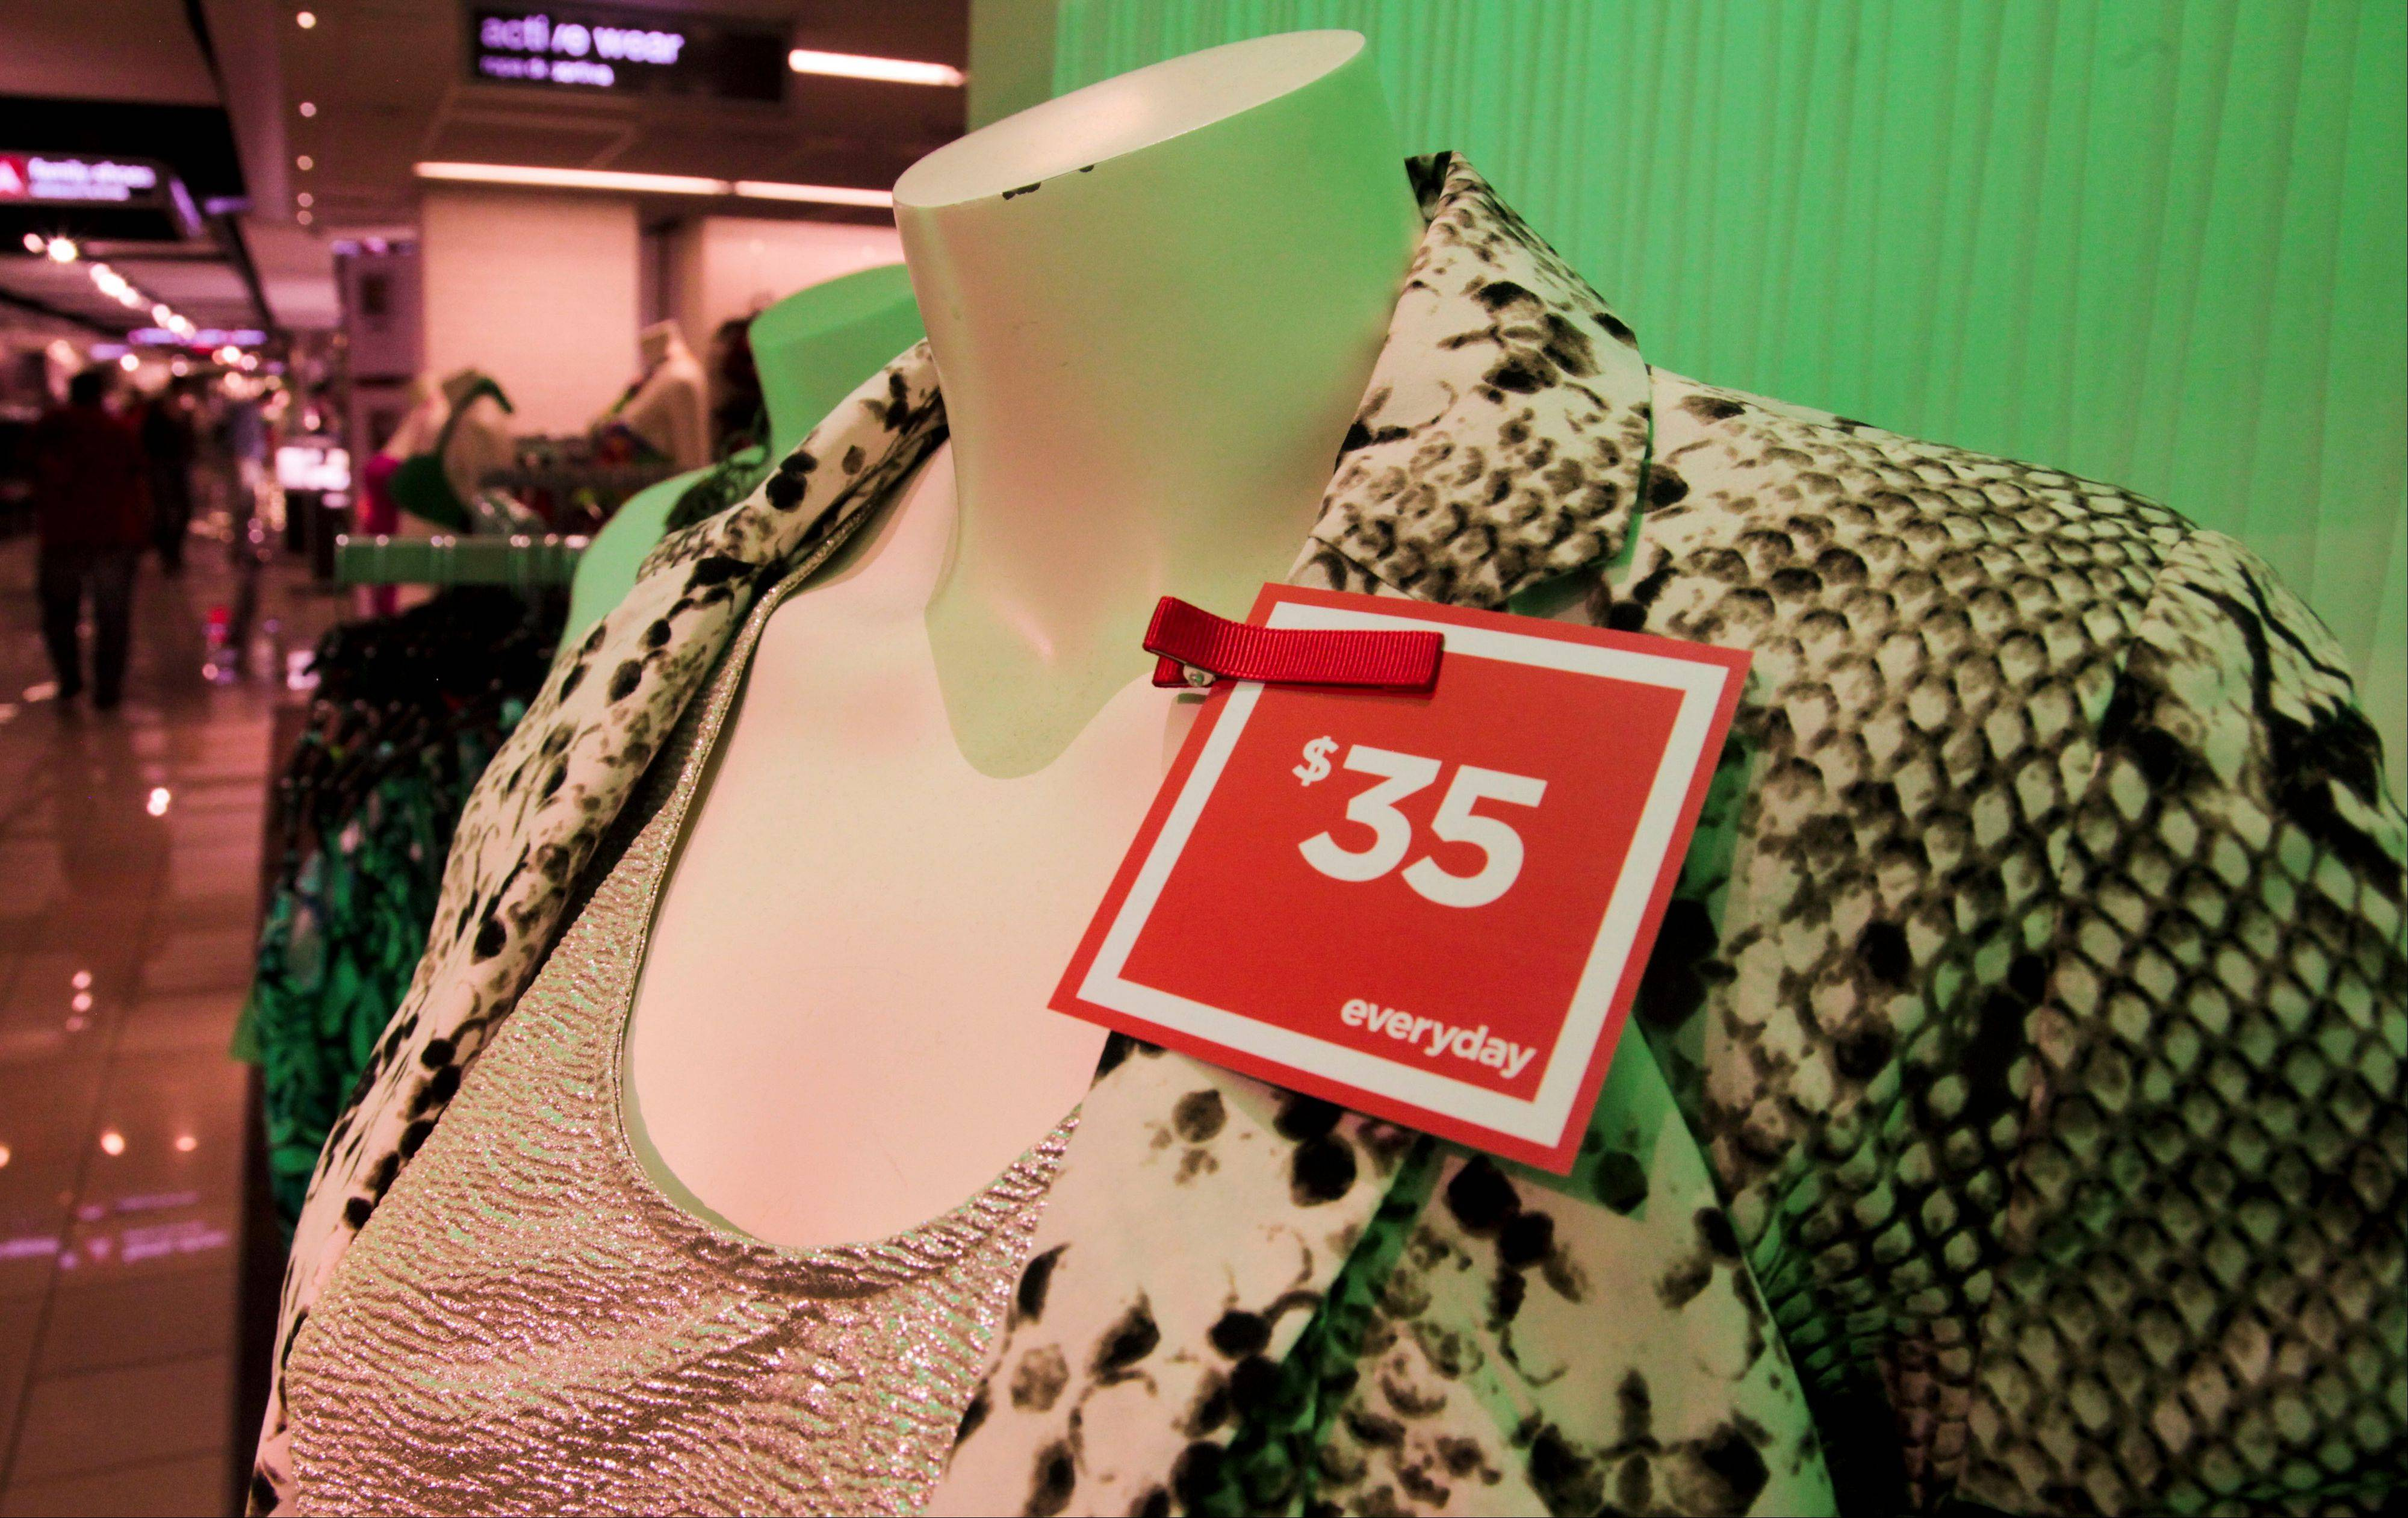 A red �everyday� pricing tag is attached to clothes on display at a J.C. Penney store in New York. Six months after J.C. Penney got rid of the hundreds of sales it offers each year in favor of a three-tier pricing approach, the mid-priced department store chain is revamping its pricing strategy again.